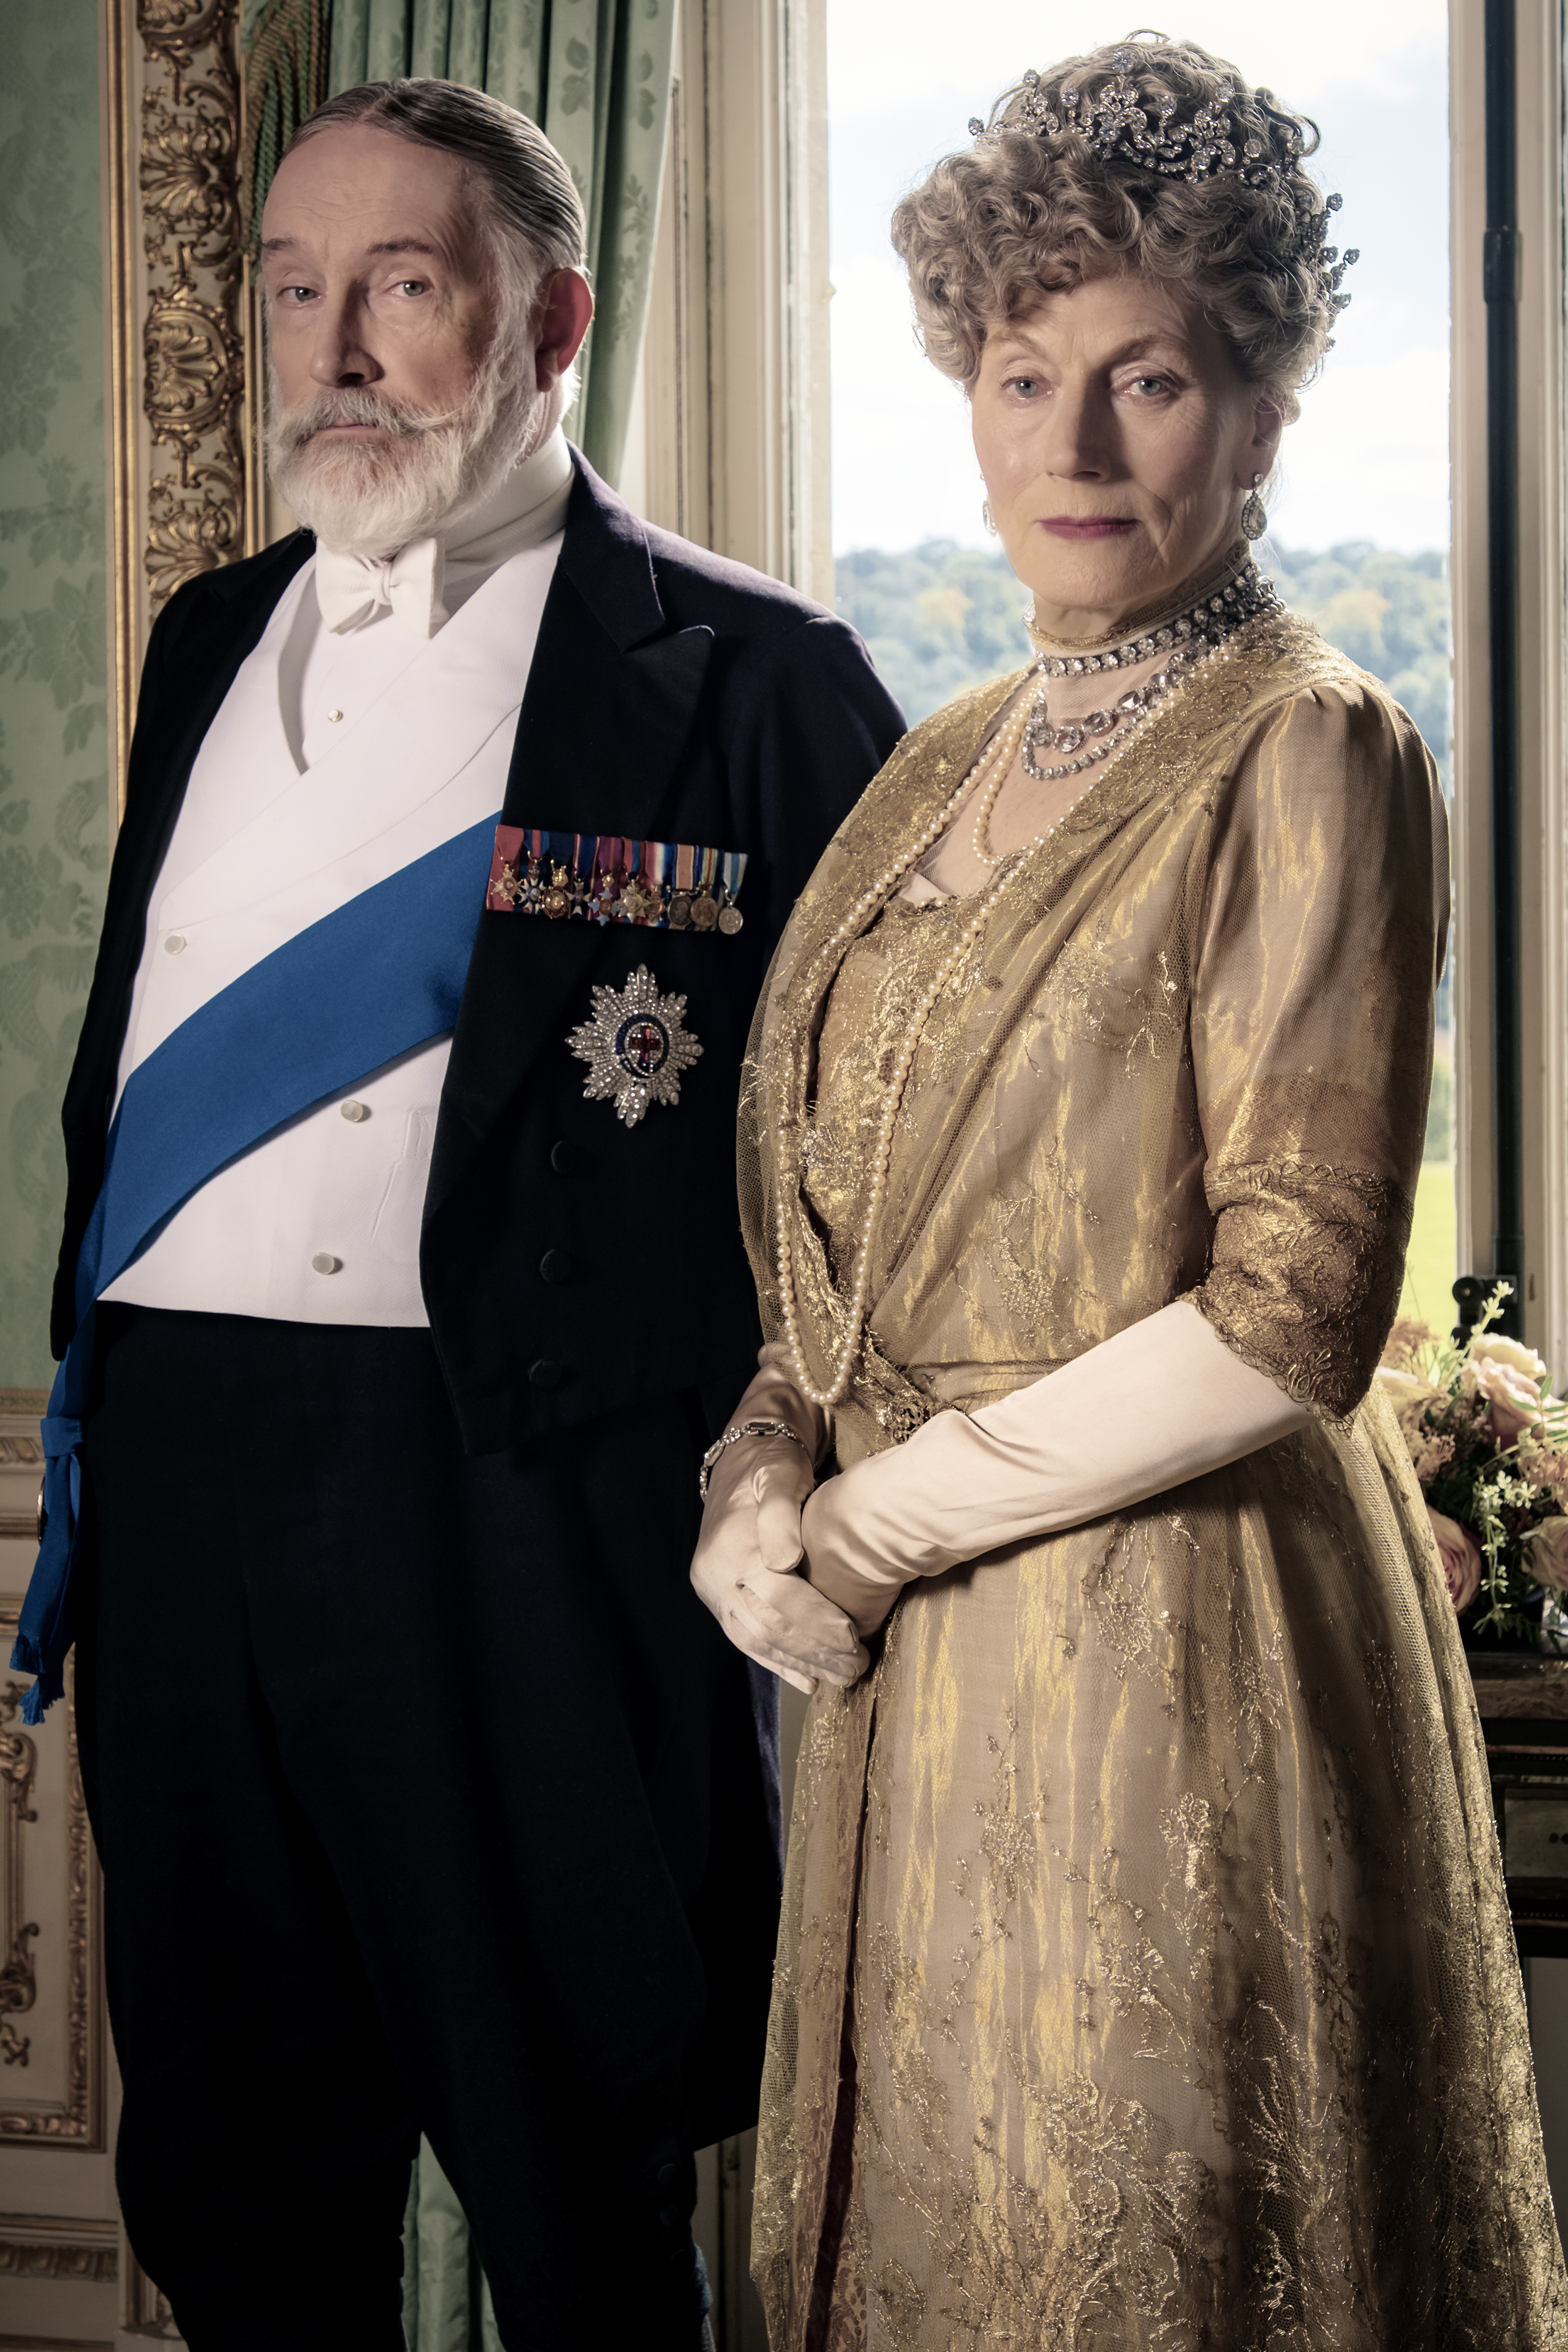 4127_JB_D002_0025_RC Simon Jones stars as King George V and Geraldine James as Queen Mary in DOWNTON ABBEY, a Focus Features release. Credit: Jaap Buitendijk / © 2019 Focus Features, LLC